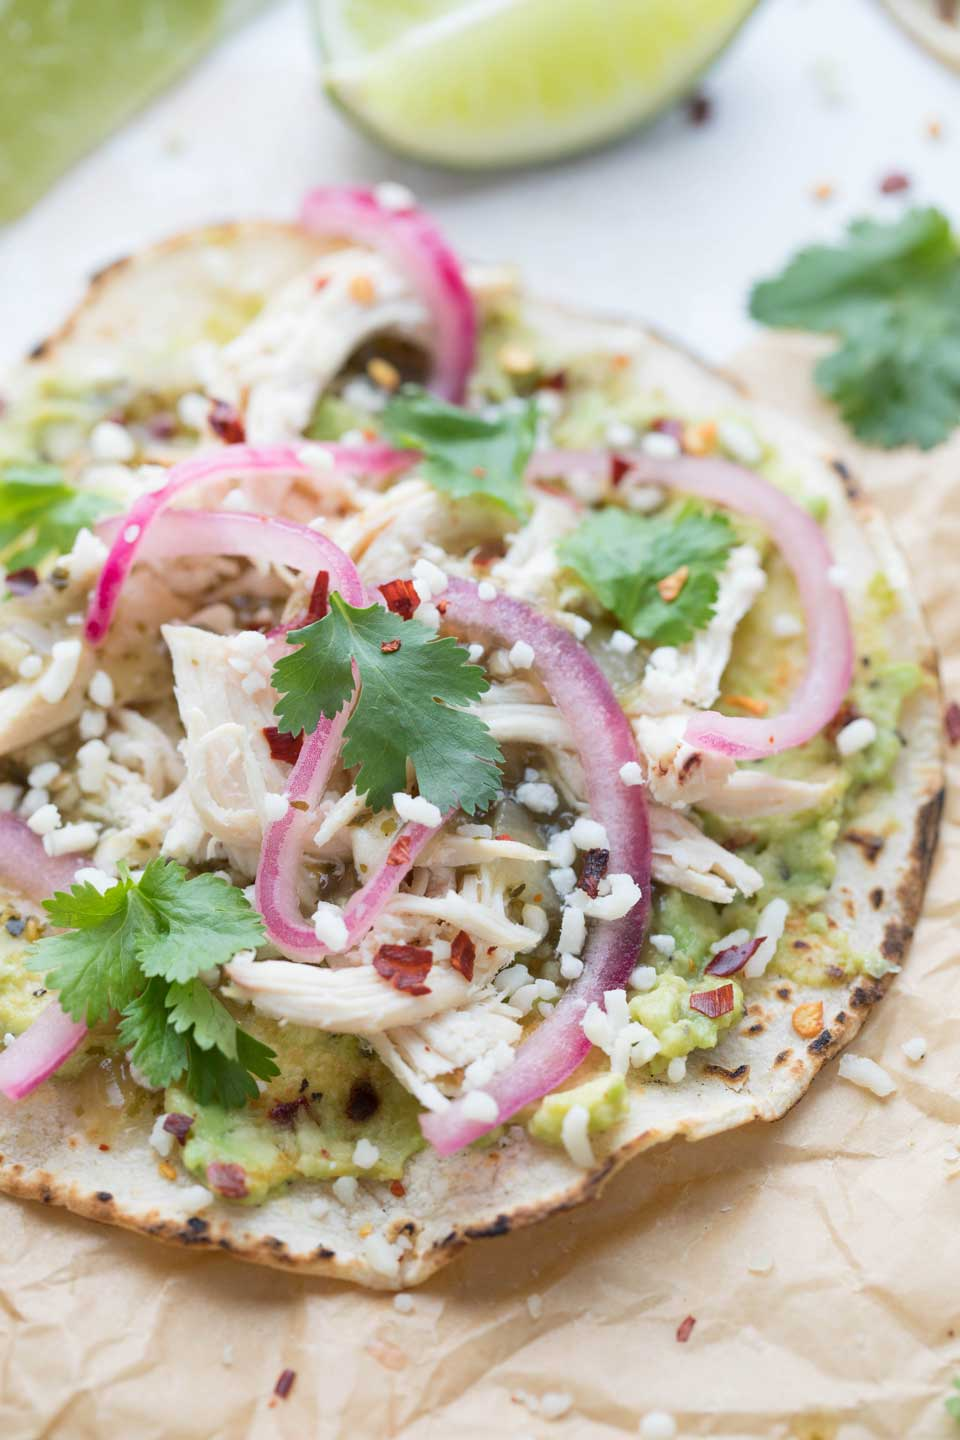 """Featuring a yummy """"smashed avocado"""" guacamole spread and quick pickled onions, these chicken tacos have lots of unique flavors – truly something special! Definitely a recipe to try for your next Taco Tuesday dinner, or even for a tailgating make-your-own taco bar … and of course, for Cinco de Mayo!"""